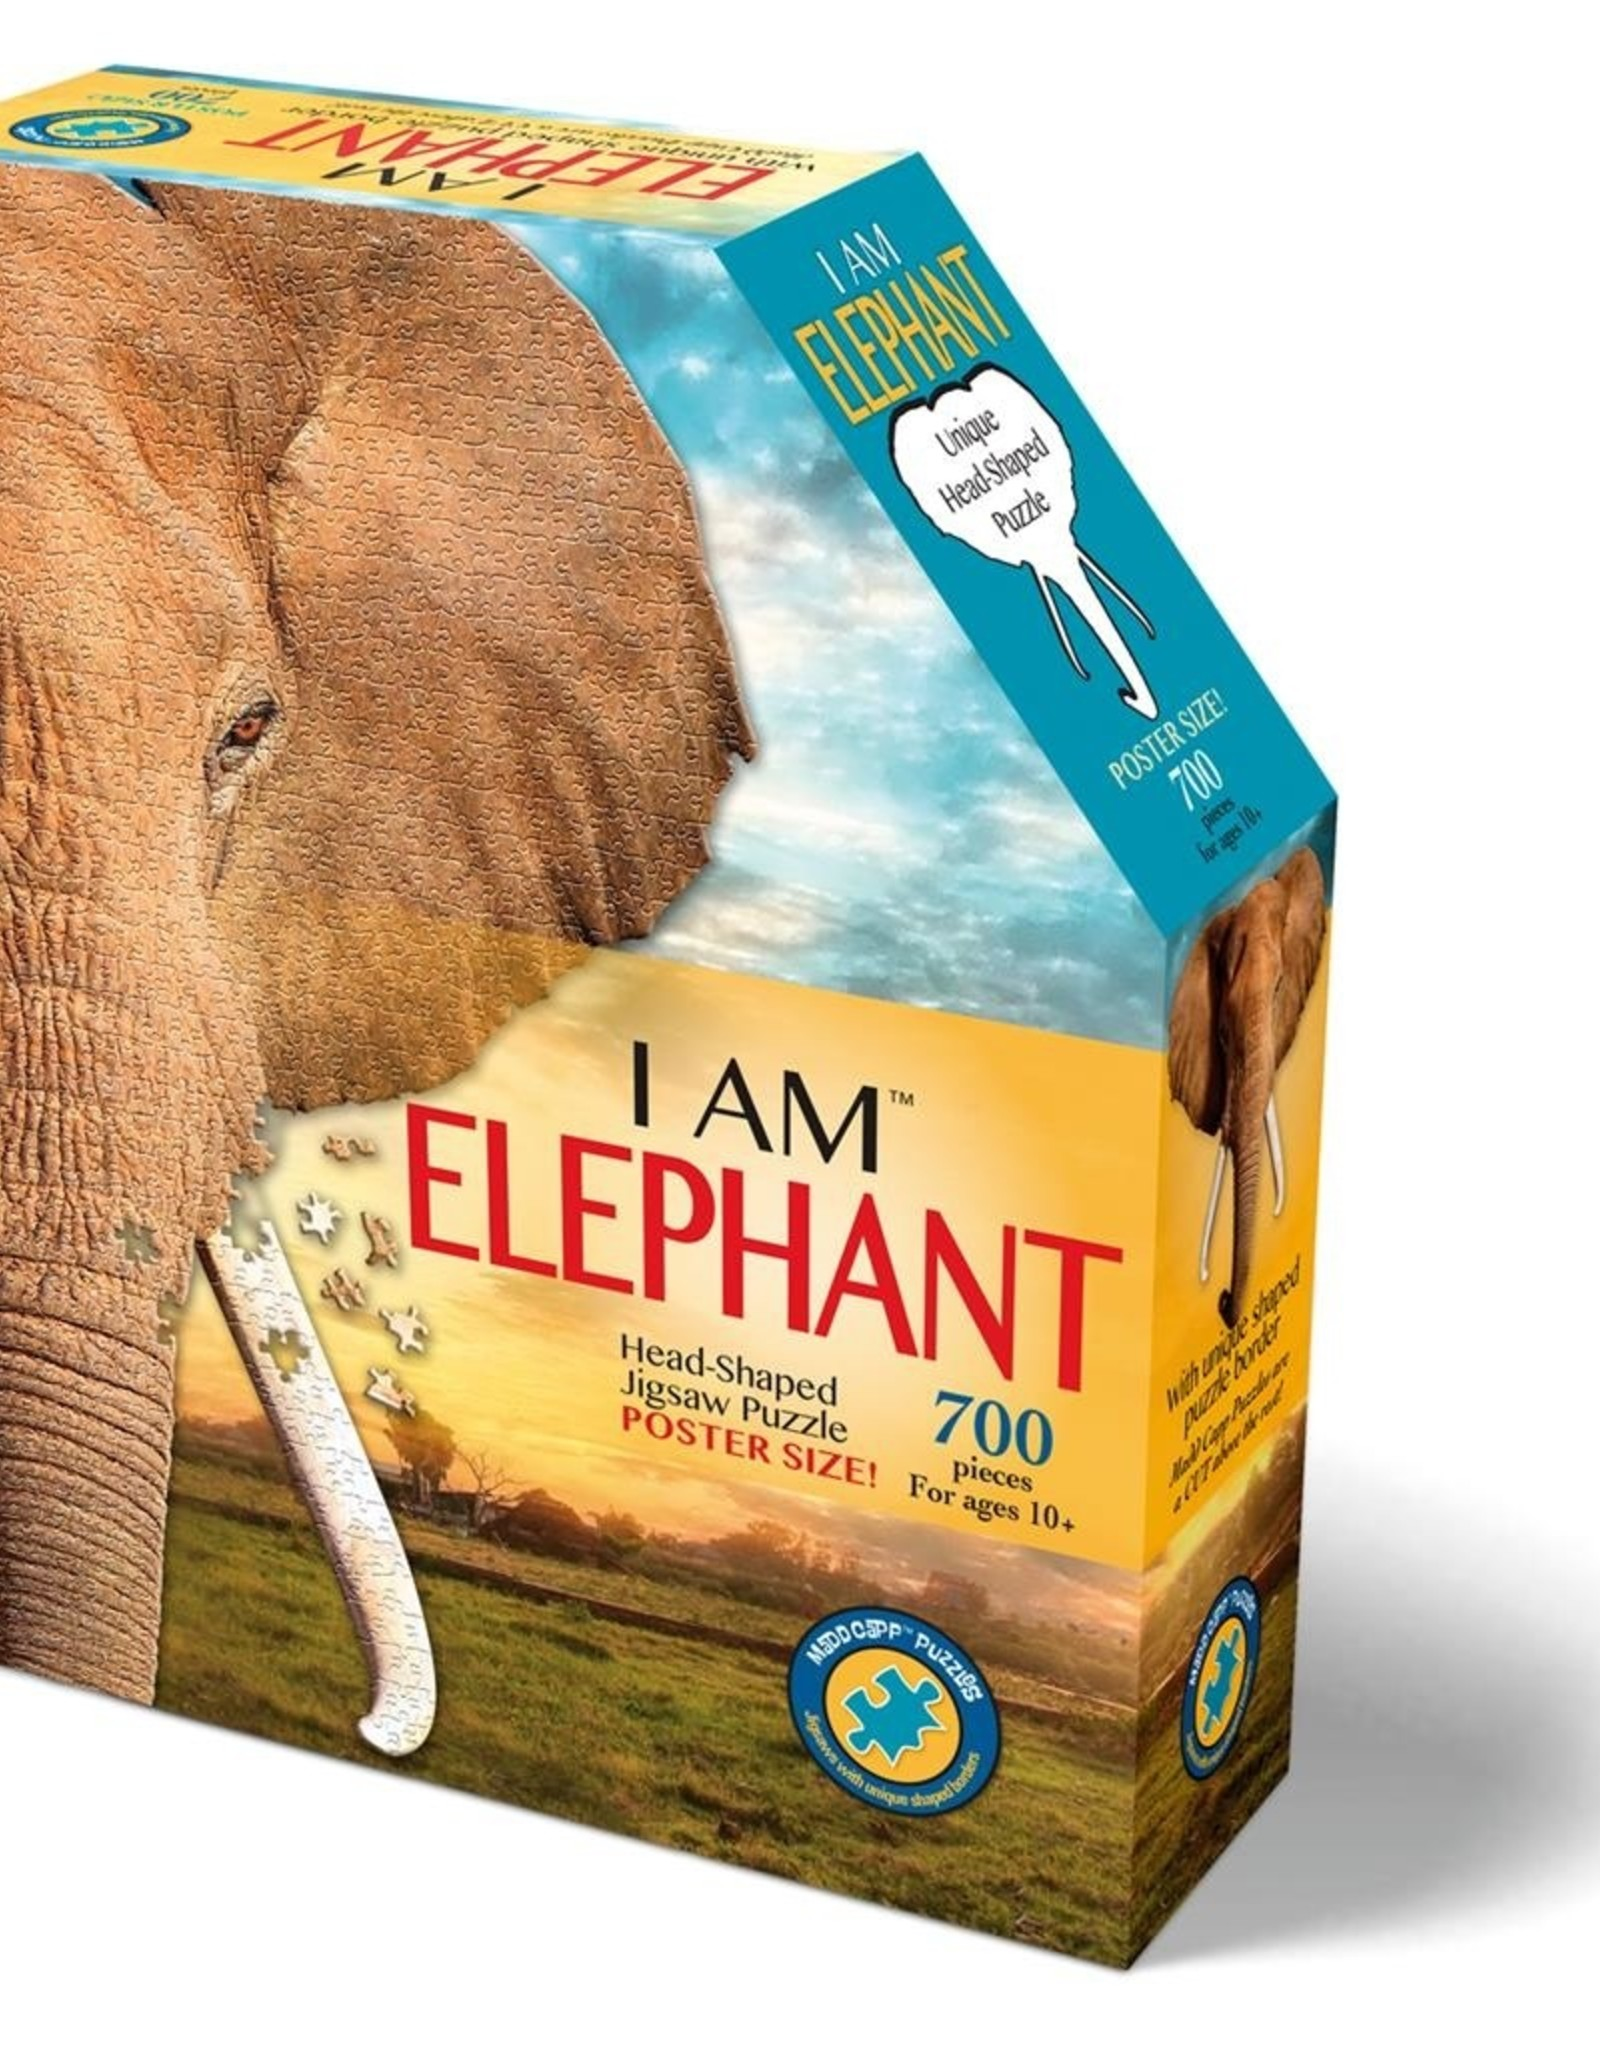 madd capp puzzles I am Elephant - puzzle 700 pieces